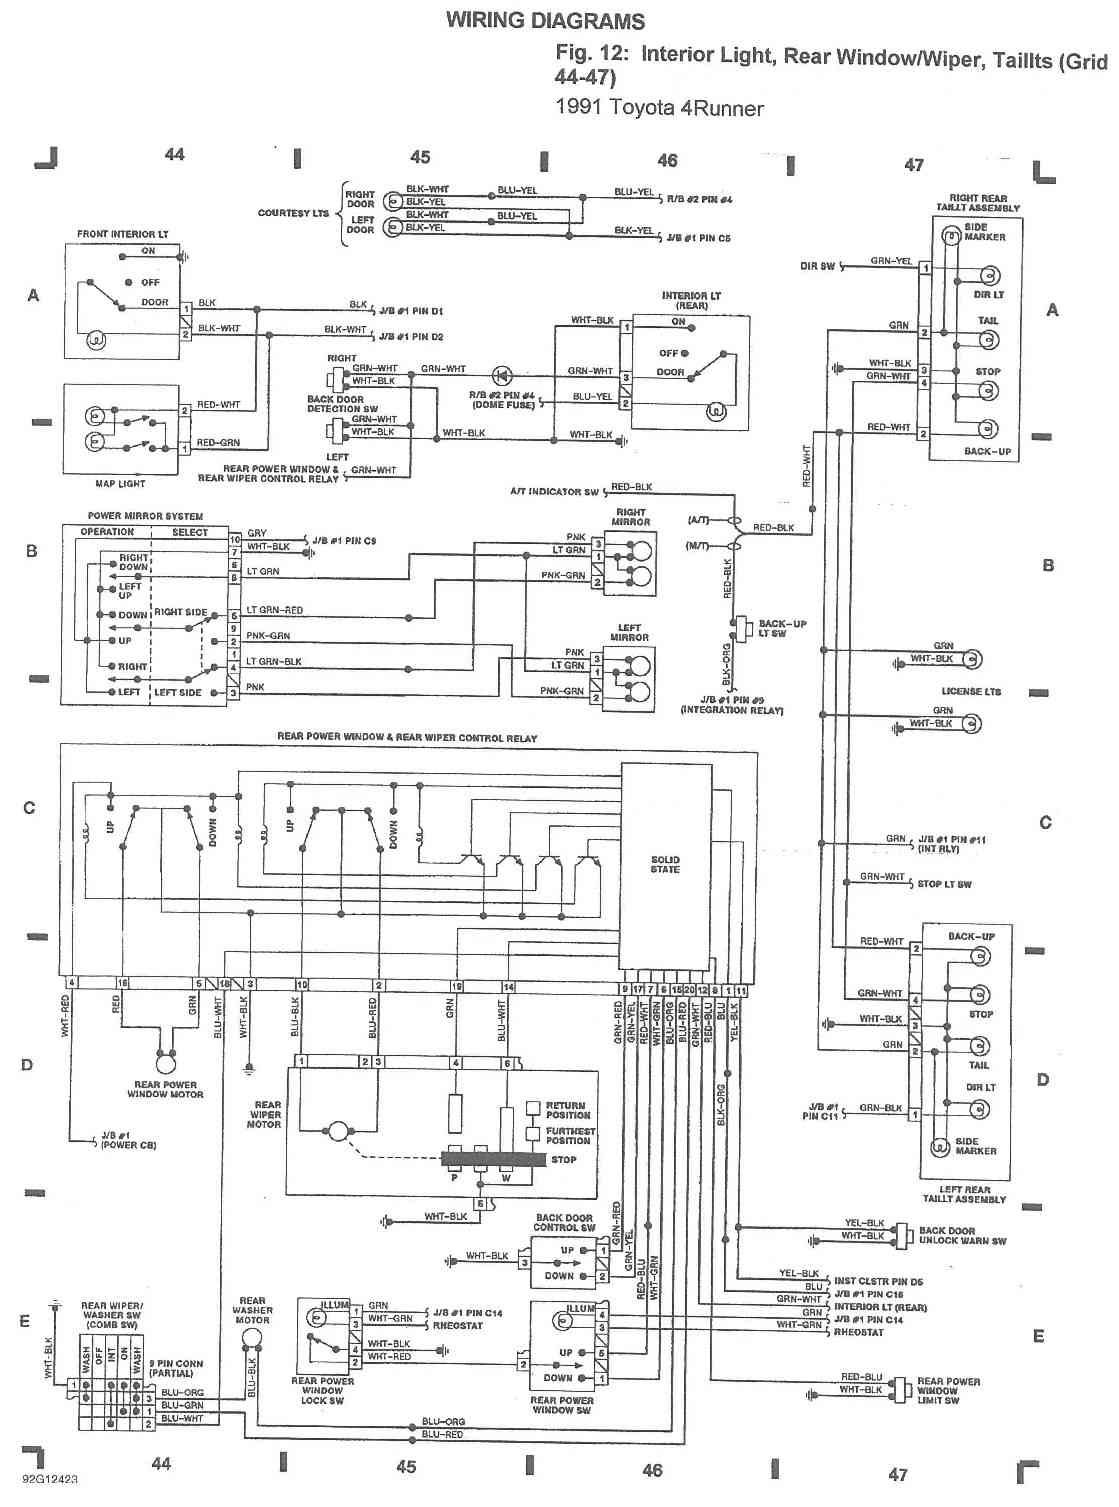 06 Toyota 4runner Wiring Diagram 1994 Jaguar Xj6 Radio Wiring Diagram Bosecar Begaya Decorresine It